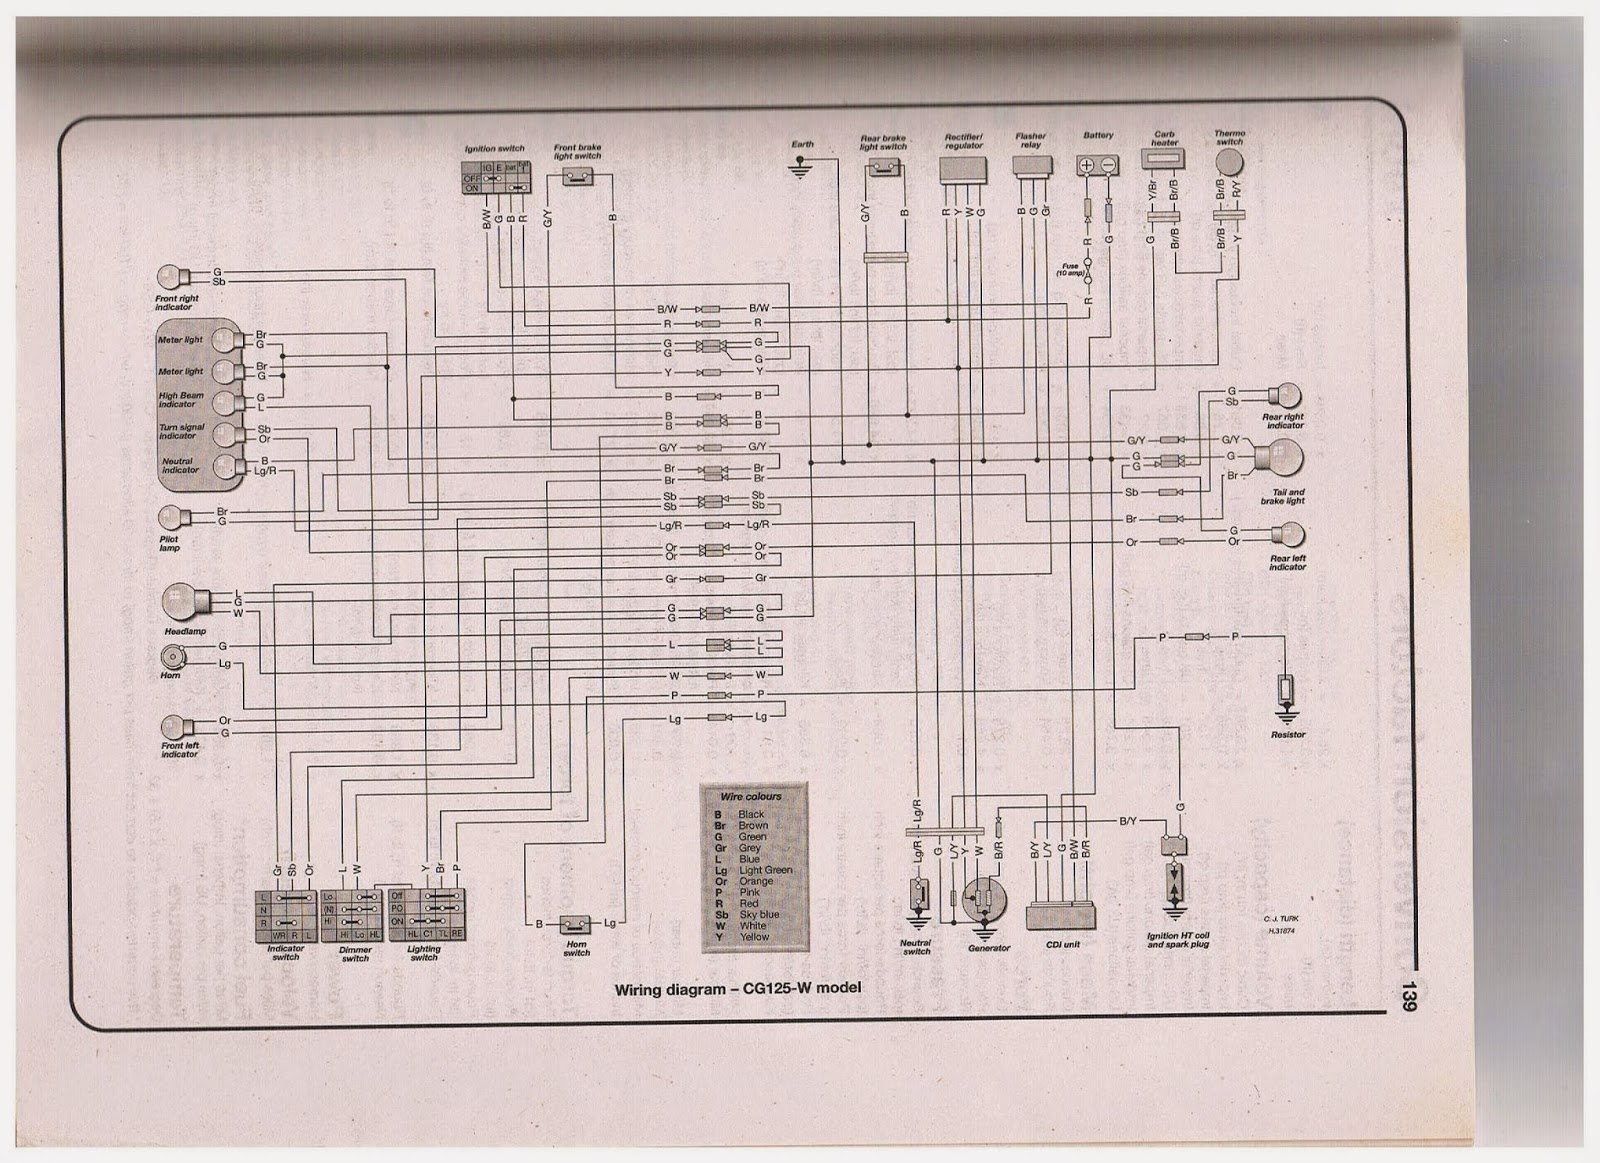 WRG-4500] Peterbilt 386 Wiring Diagram on